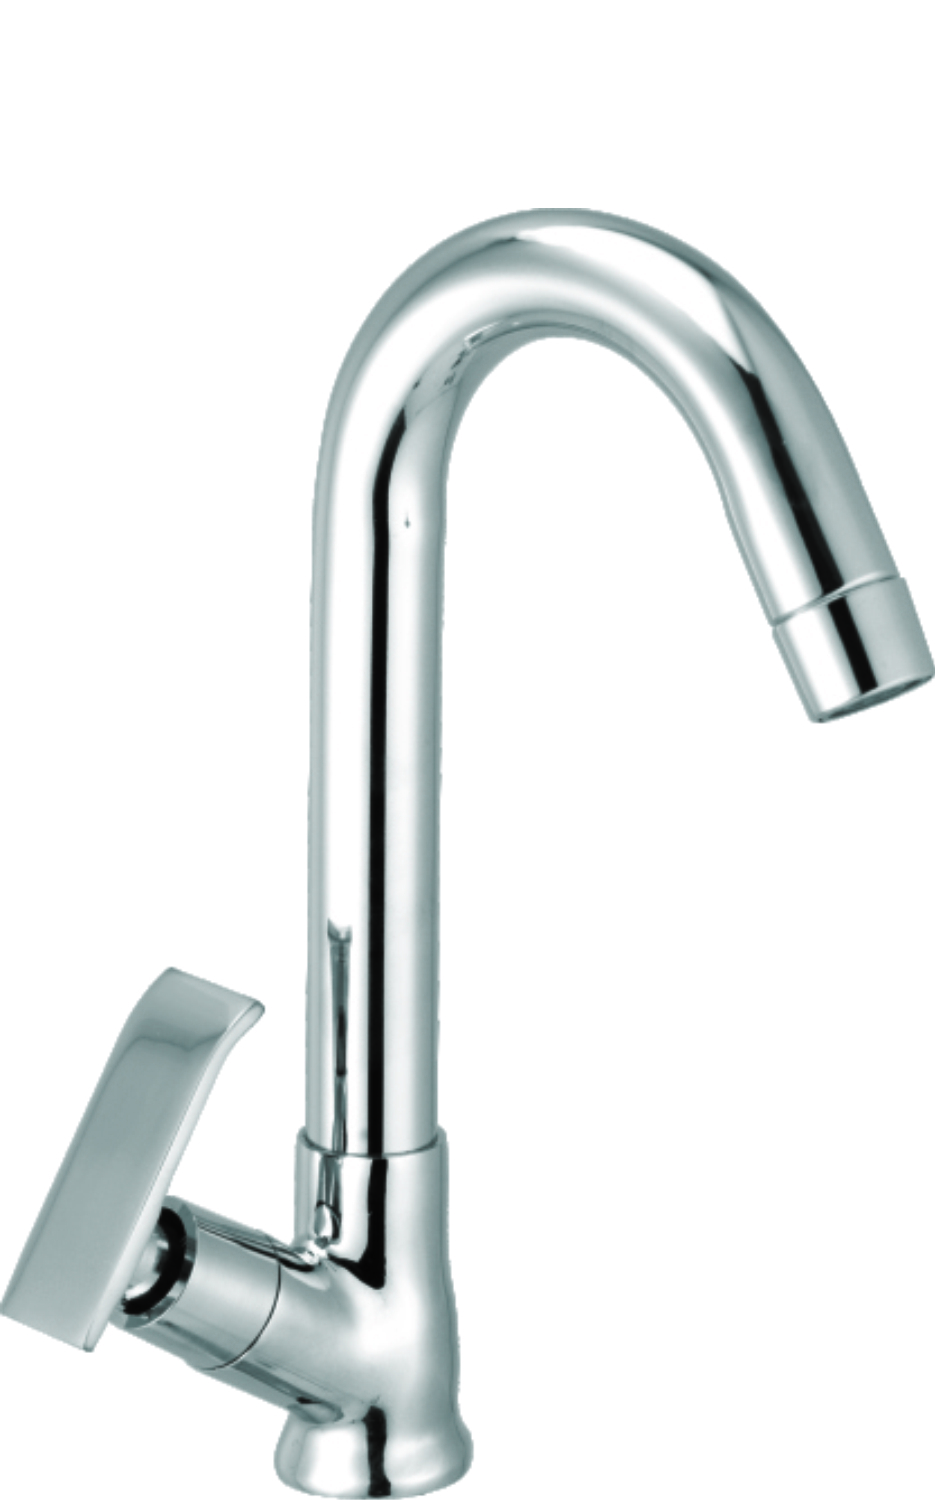 Wall Mixer With Bend